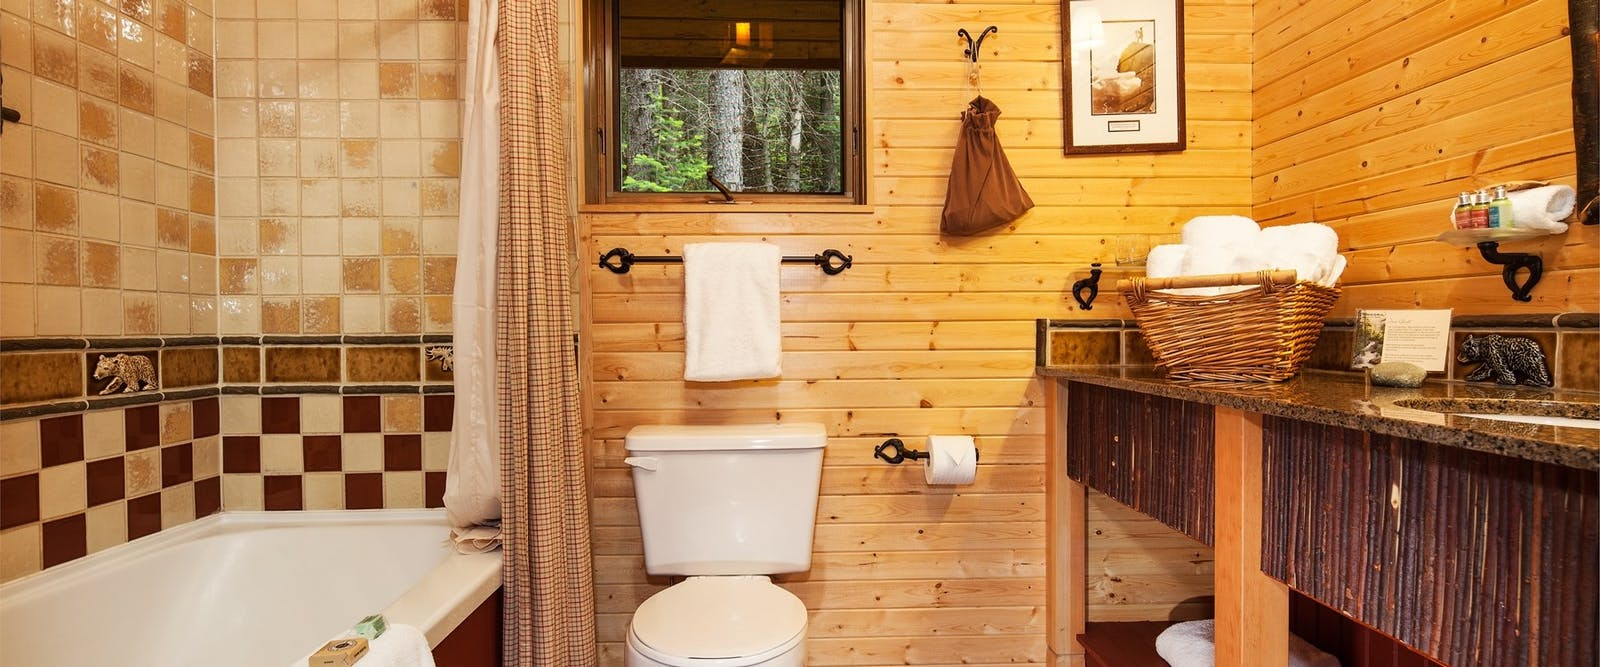 Lodge bathroom at Cathedral Mountain Lodge, British Columbia